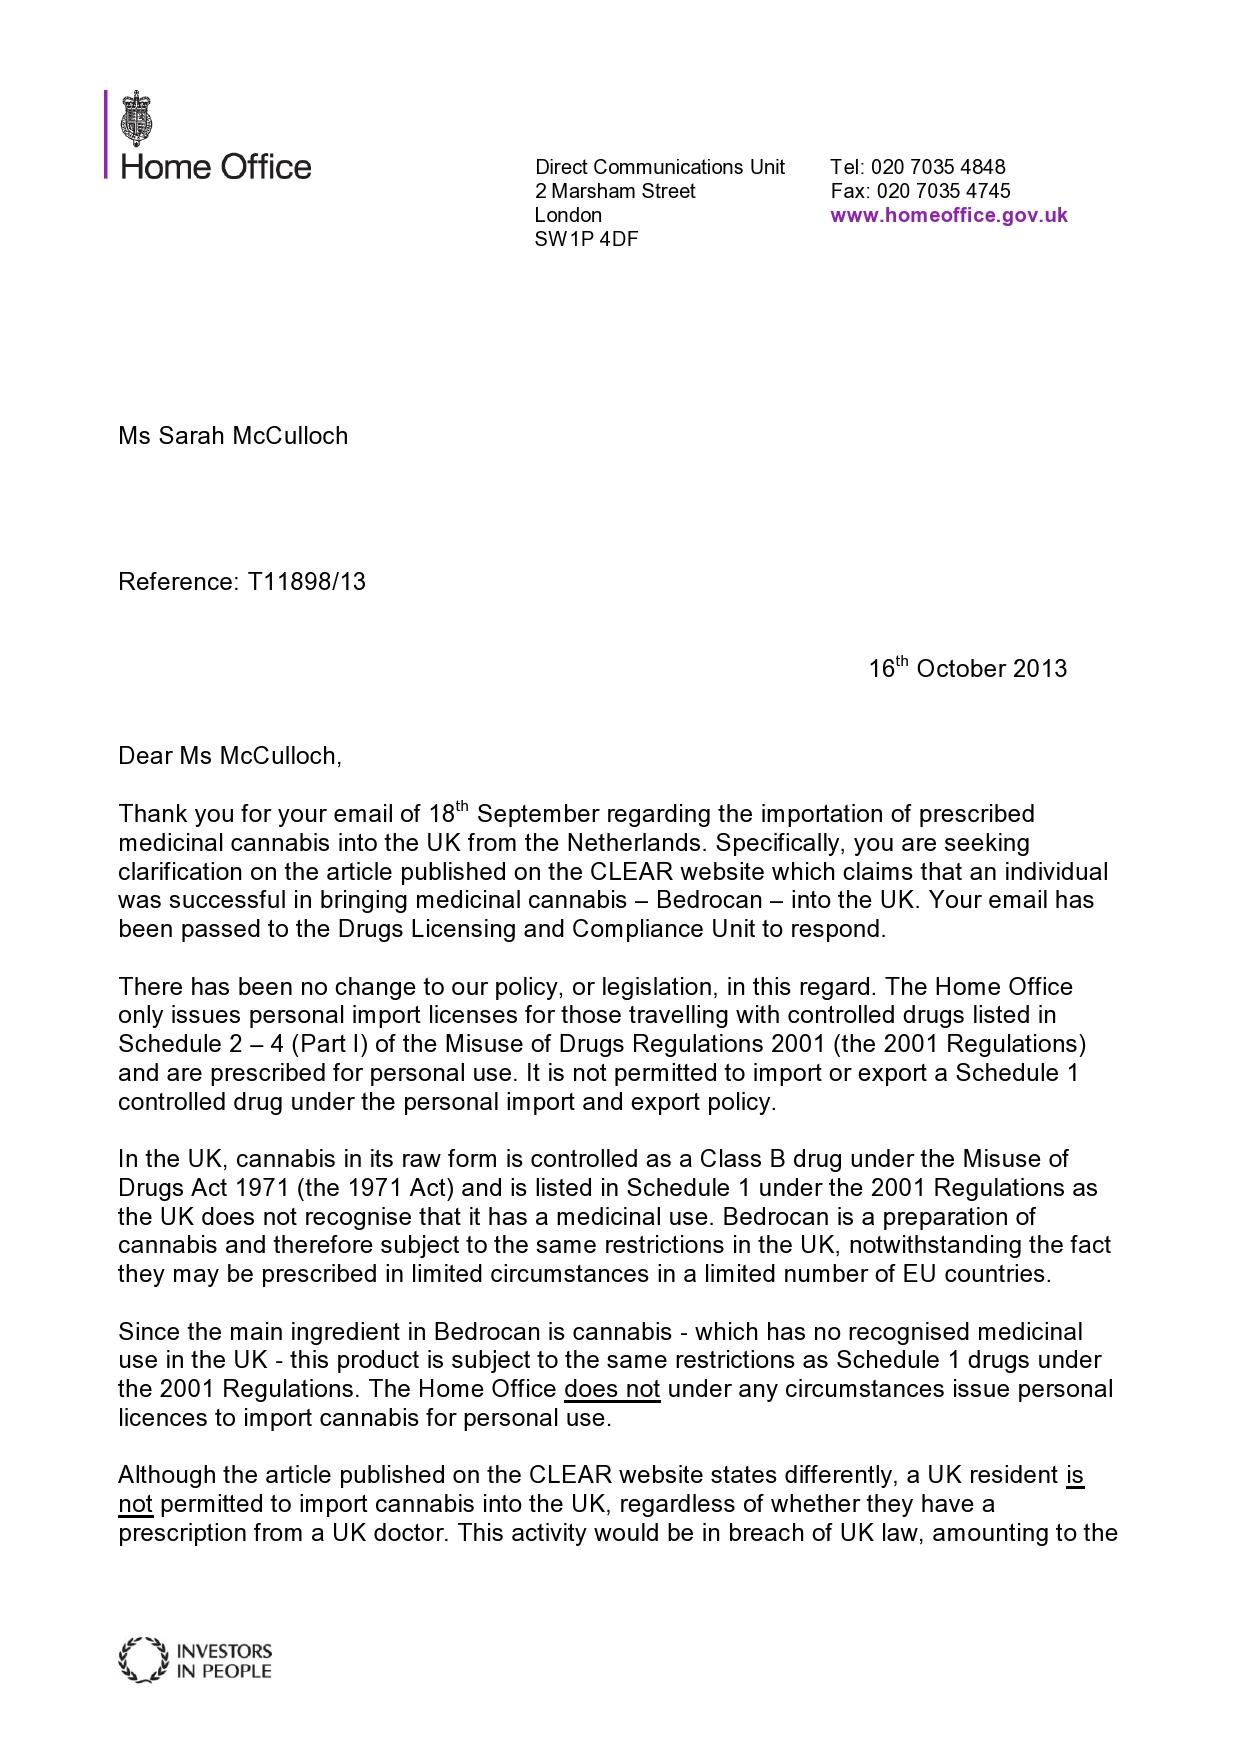 Letter from the Drug Licencing Unit from the Home Office re medical cannabis pt 2